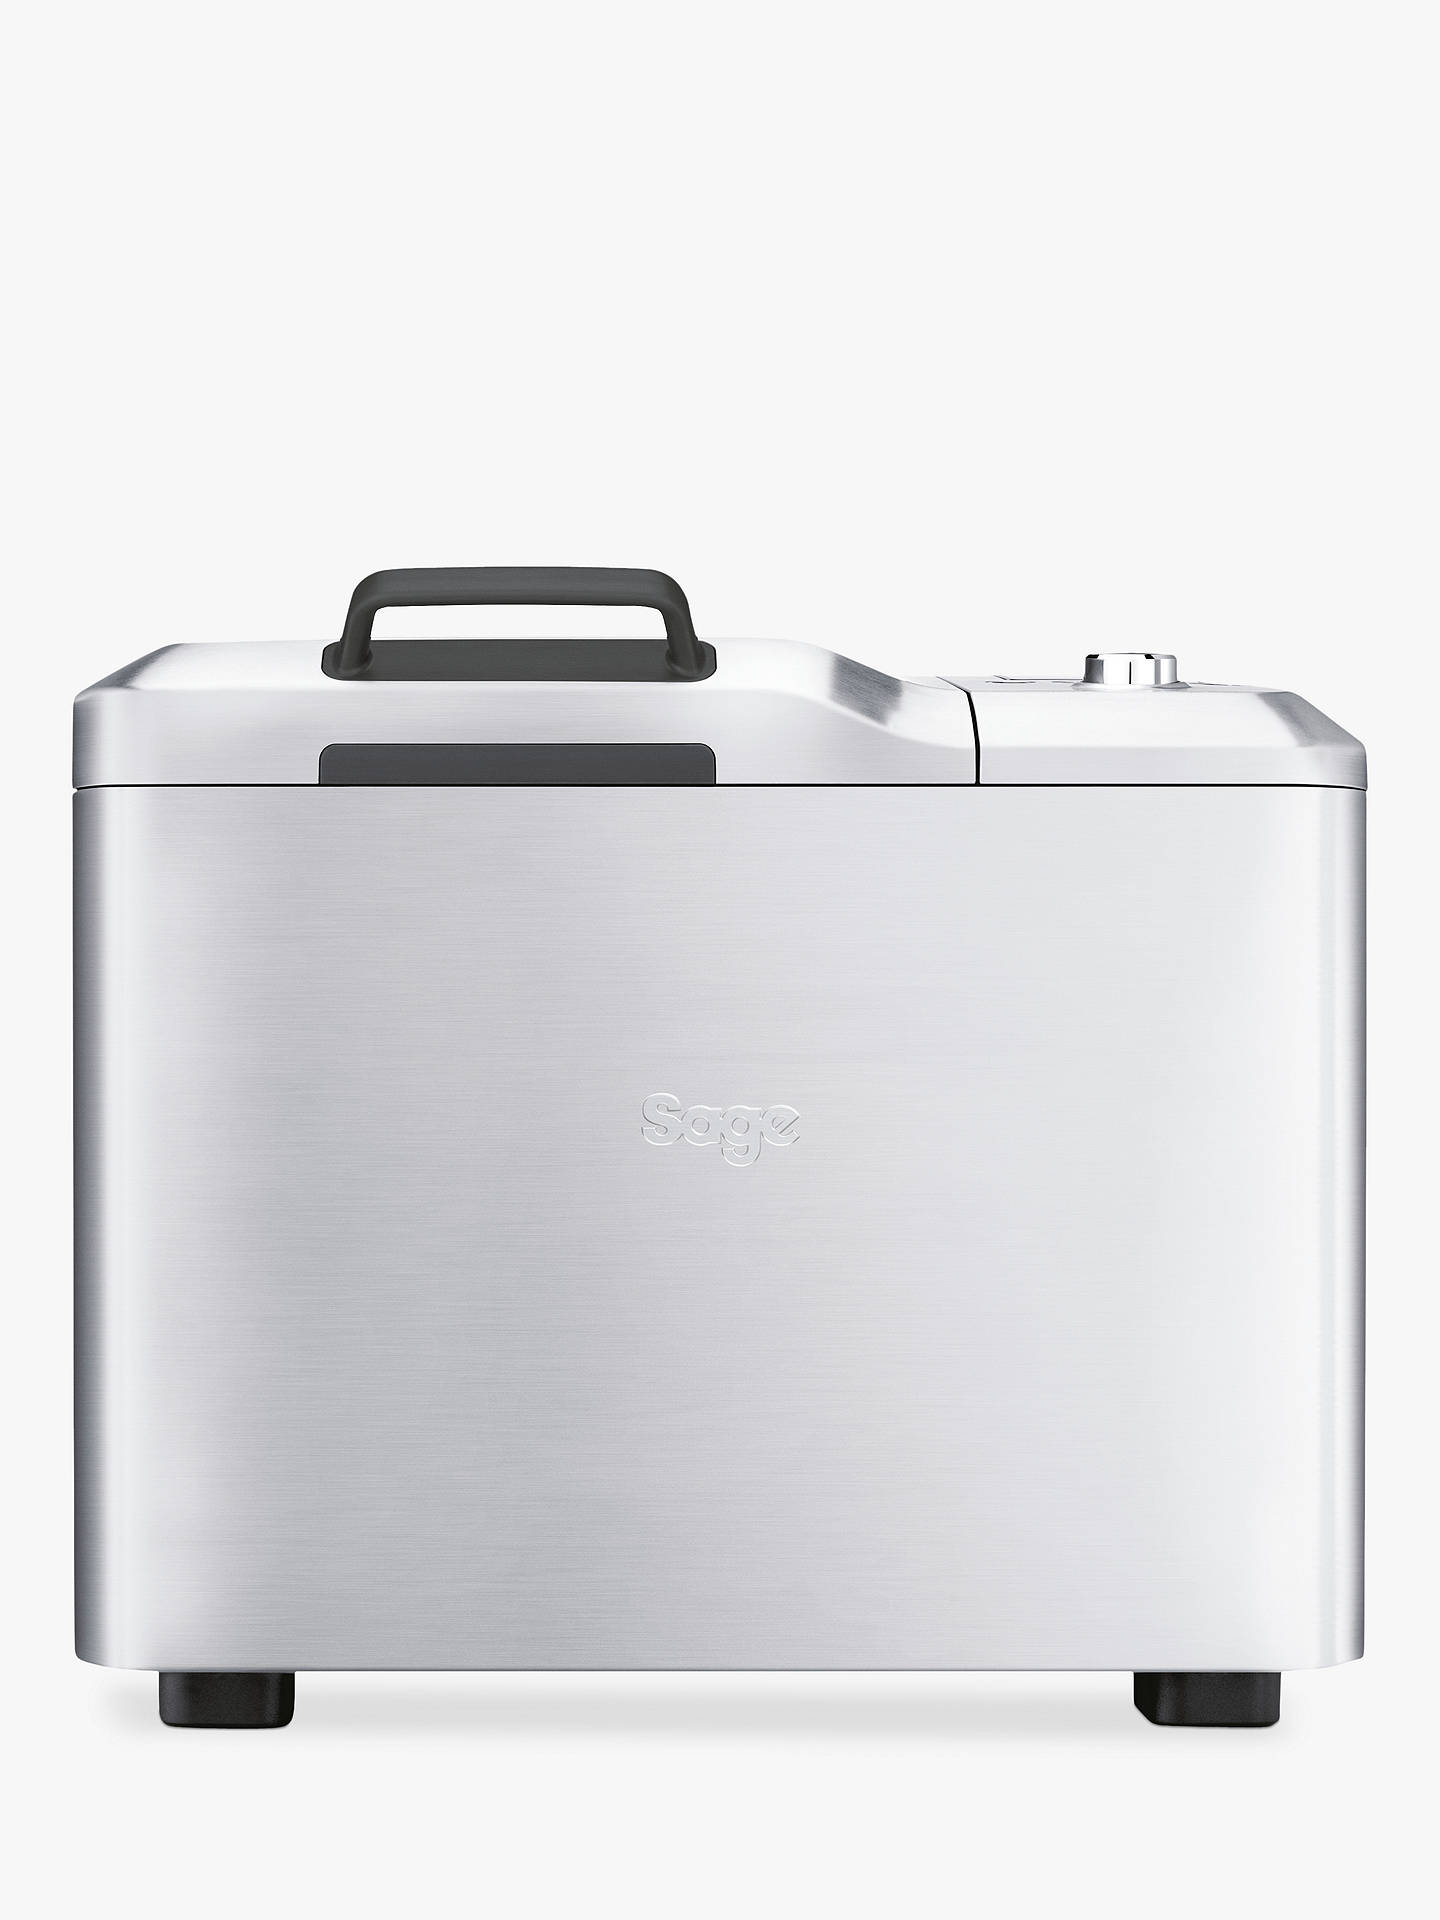 Buy Sage The Custom Loaf Breadmaker Online at johnlewis.com